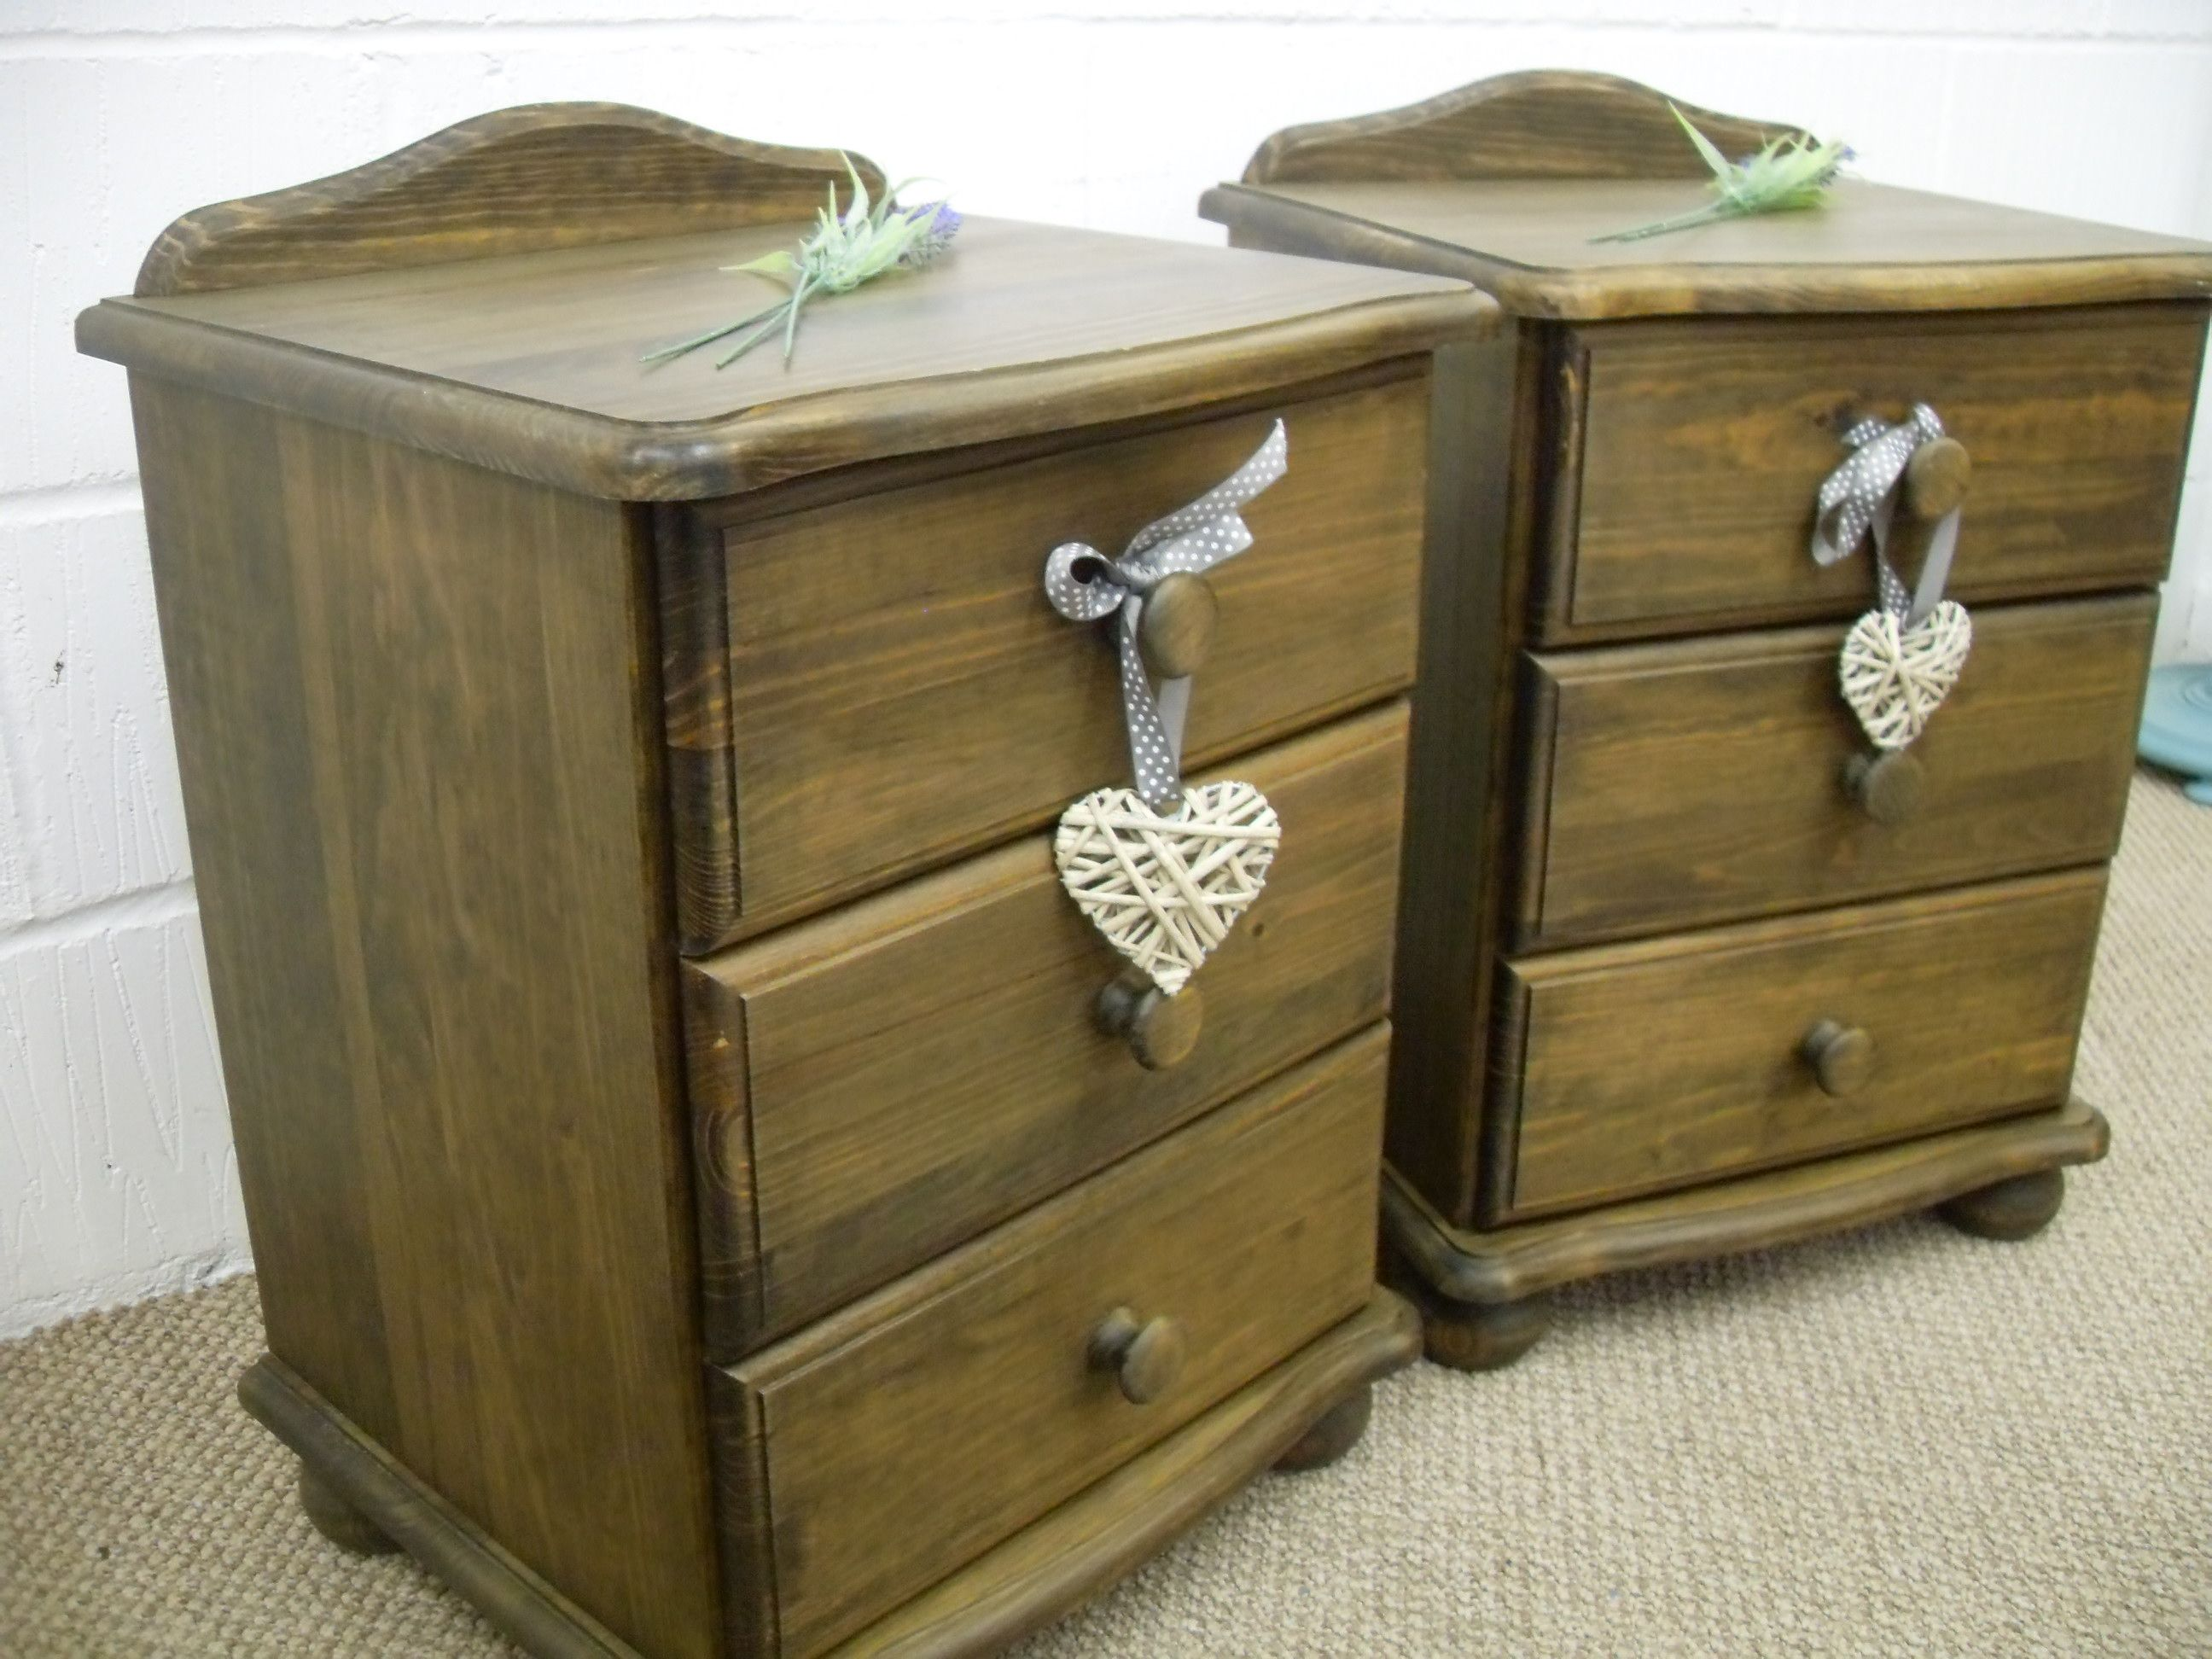 2 X DARK WAXED SOLID PINE BEDSIDE CABINETS - W 48 - D 40 - H 62 CM - £139  http://www.drabtofabfurniture.co.uk/